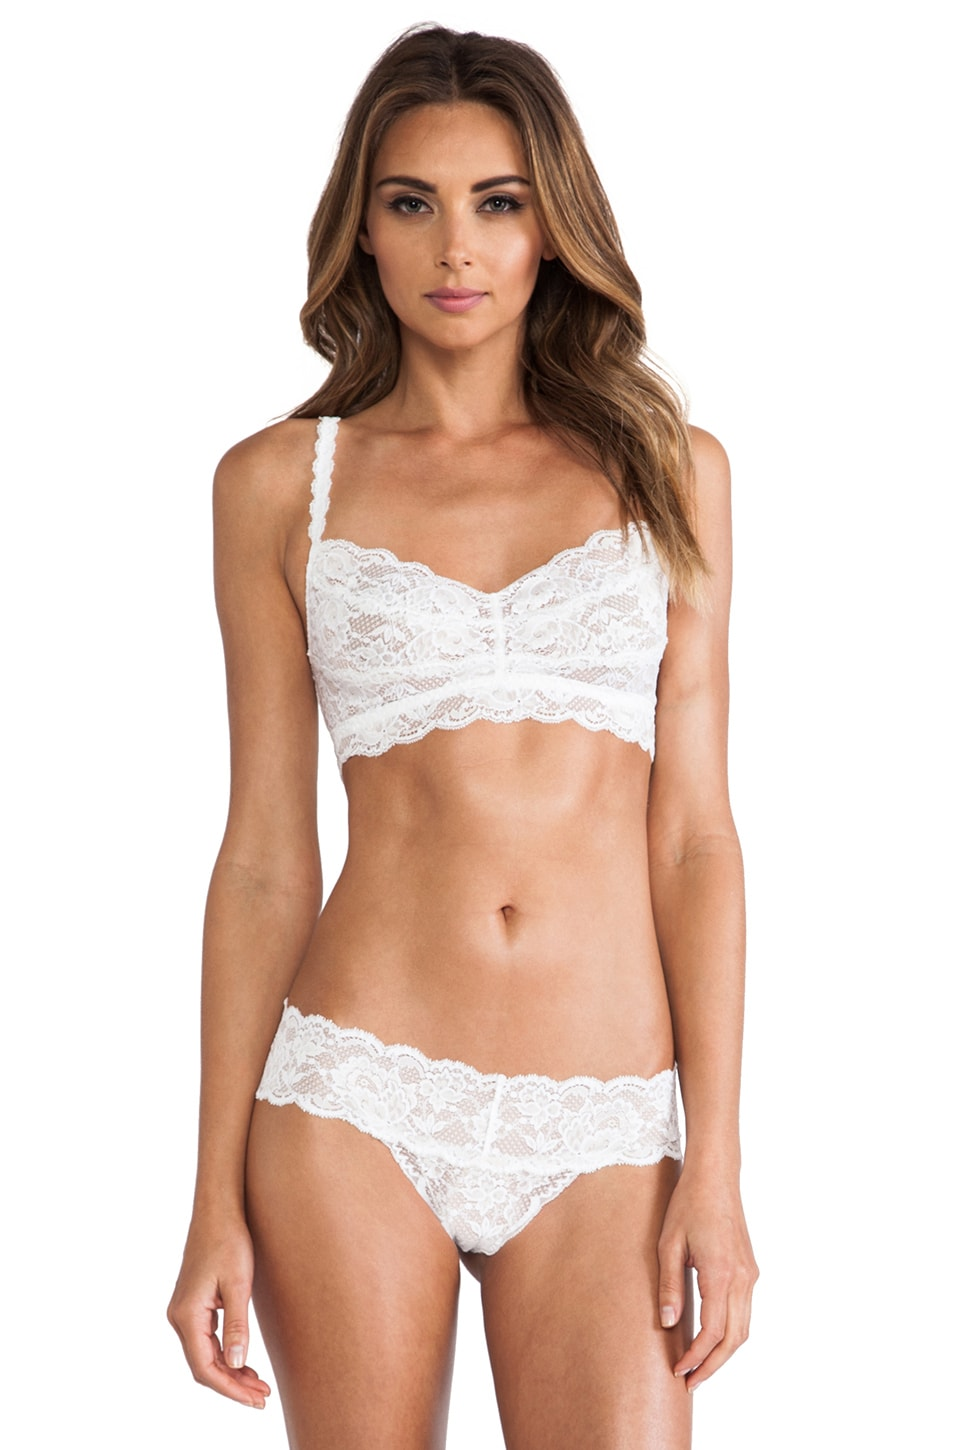 Cosabella Never Say Never Sweetie Soft Bra in White